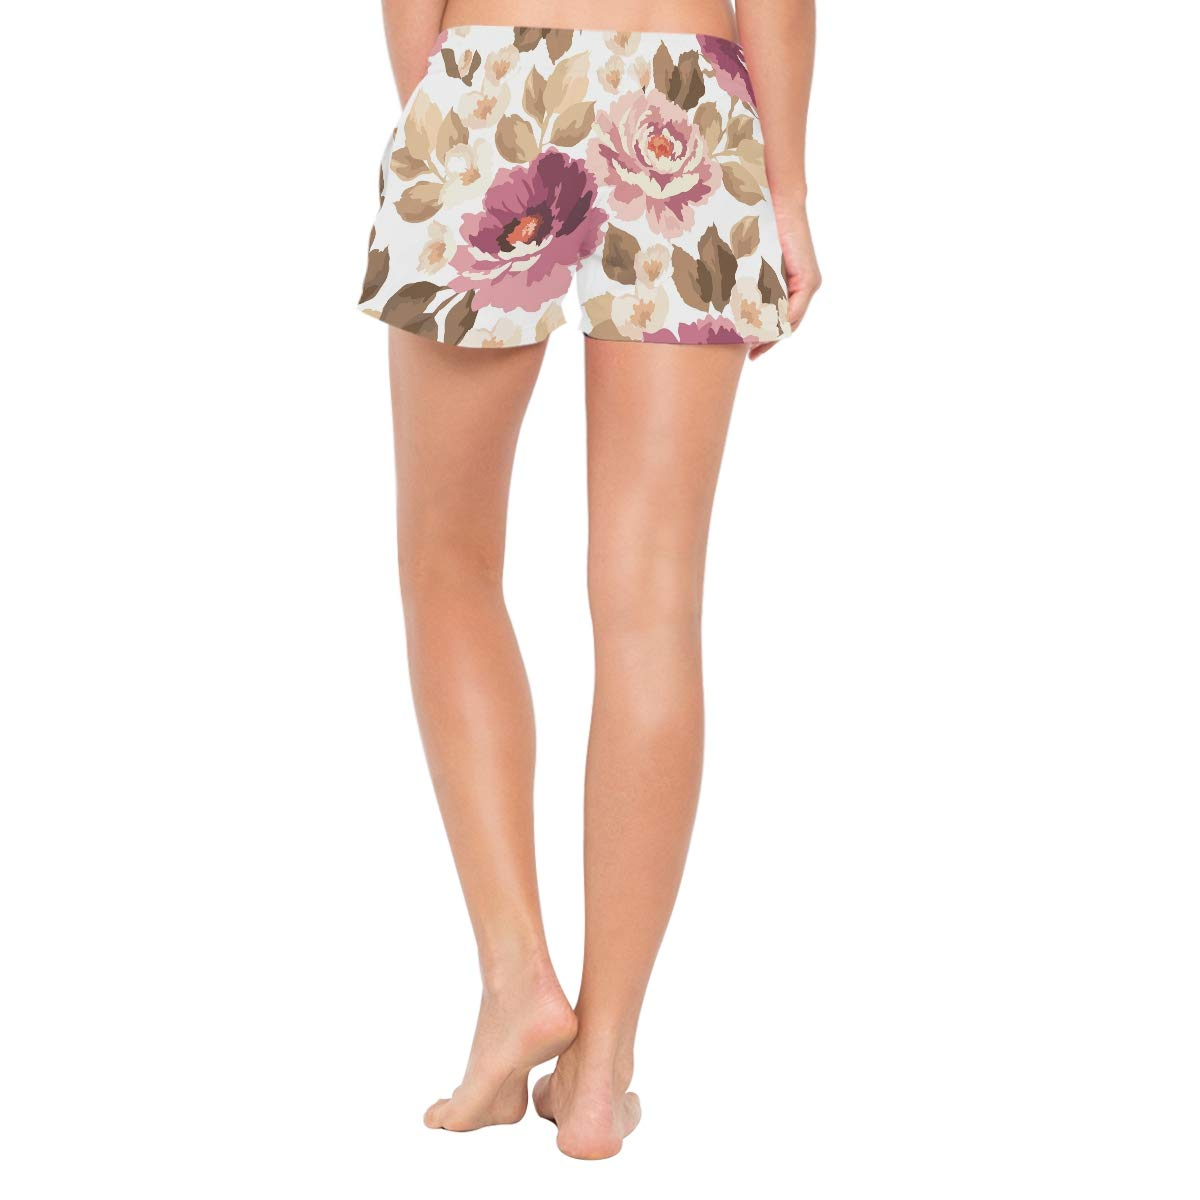 NWTSPY Pink Flowers Womens Sport Beach Swim Shorts Board Shorts Swimsuit with Mesh Lining